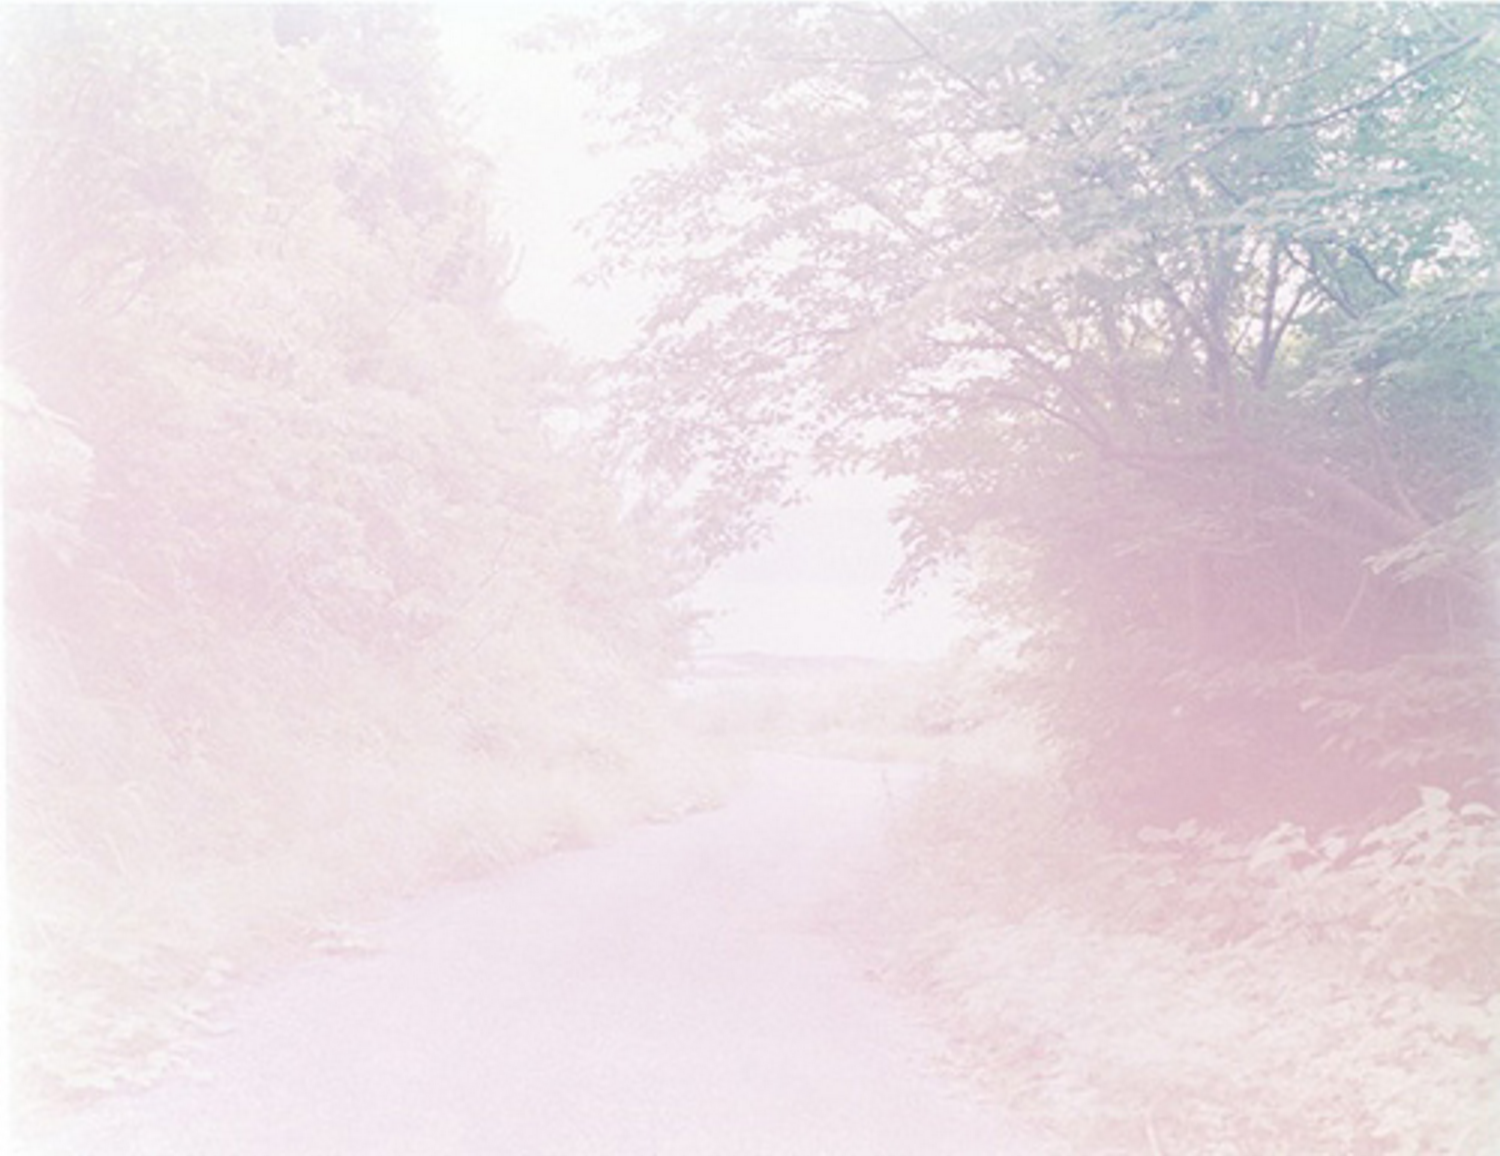 """Untitled """"The River Embraced Me"""" series from 2015 © Rinko Kawauchi"""